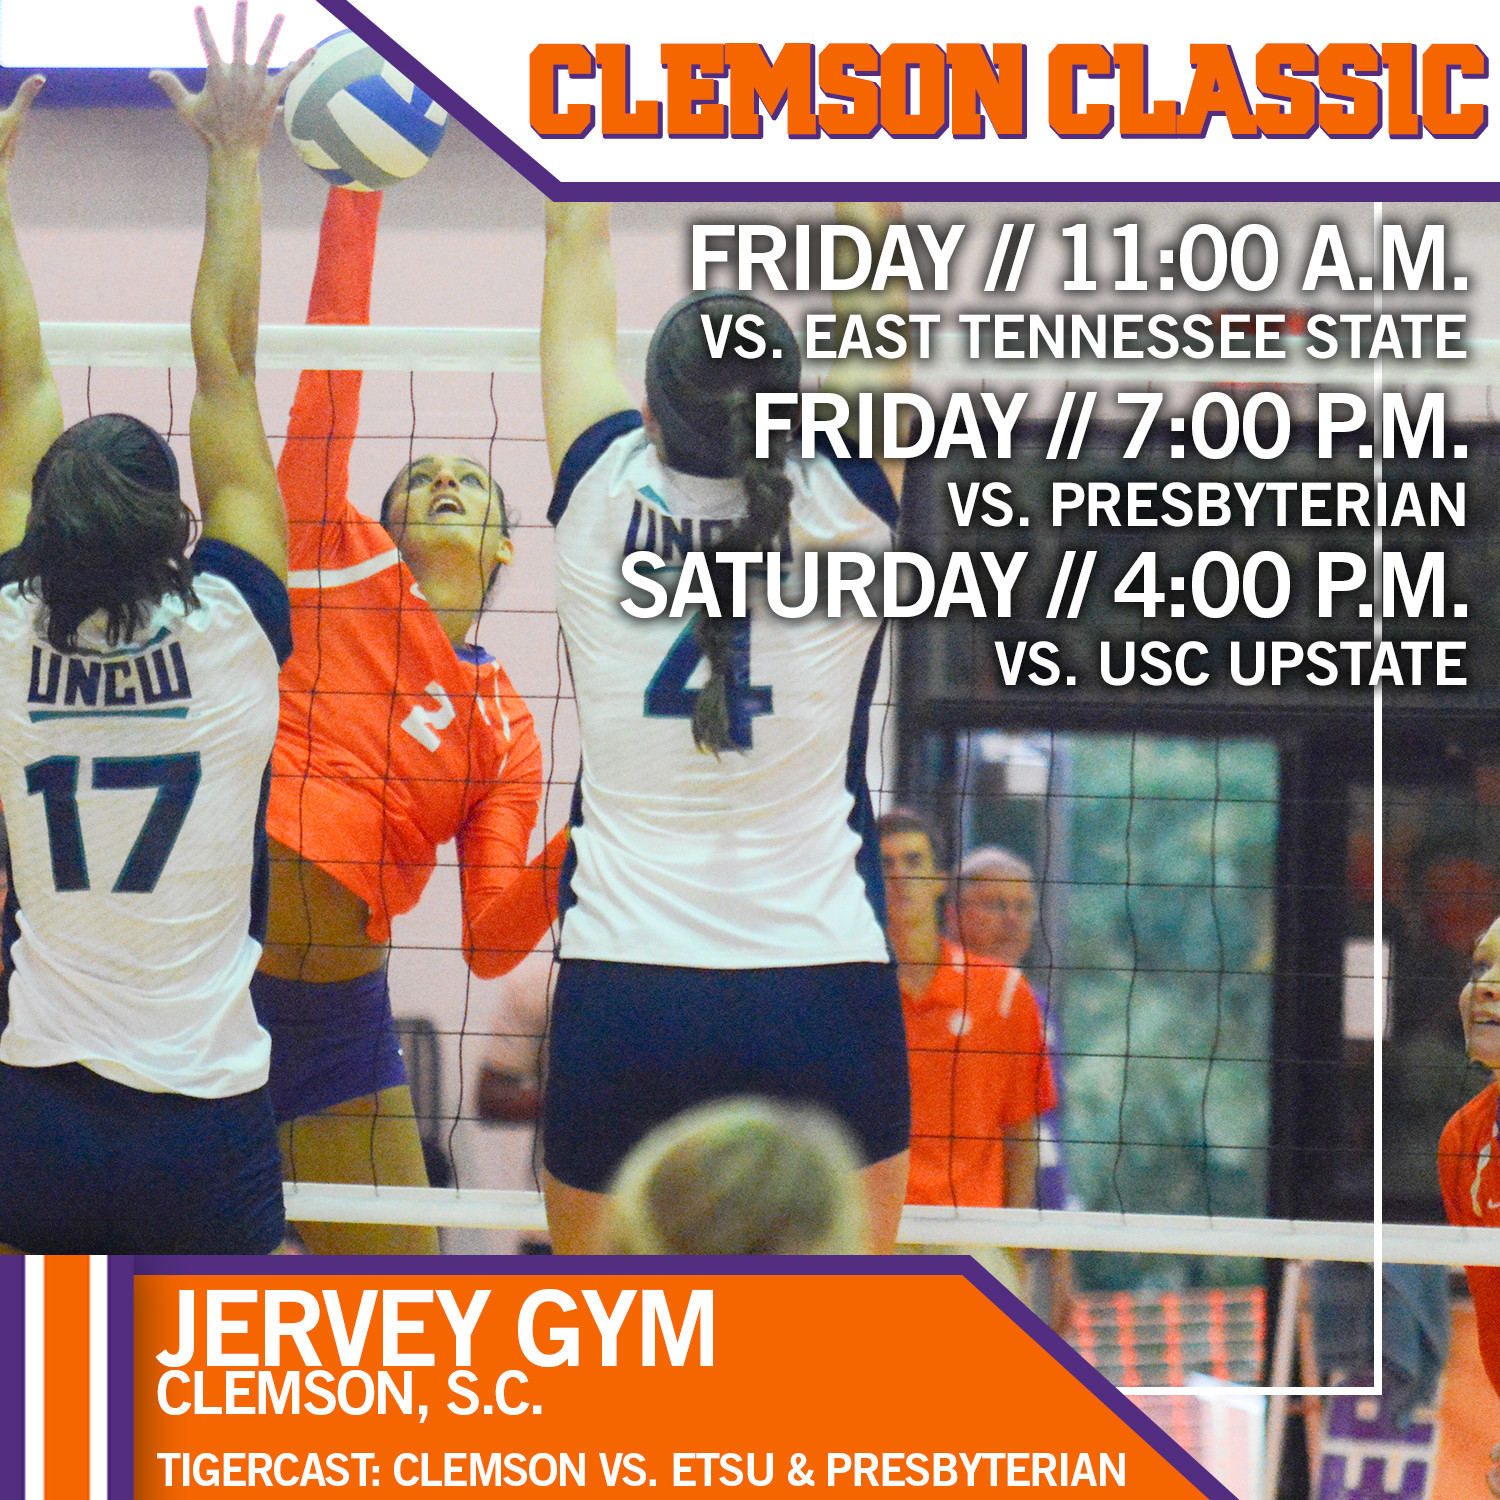 Volleyball To Host Clemson Classic